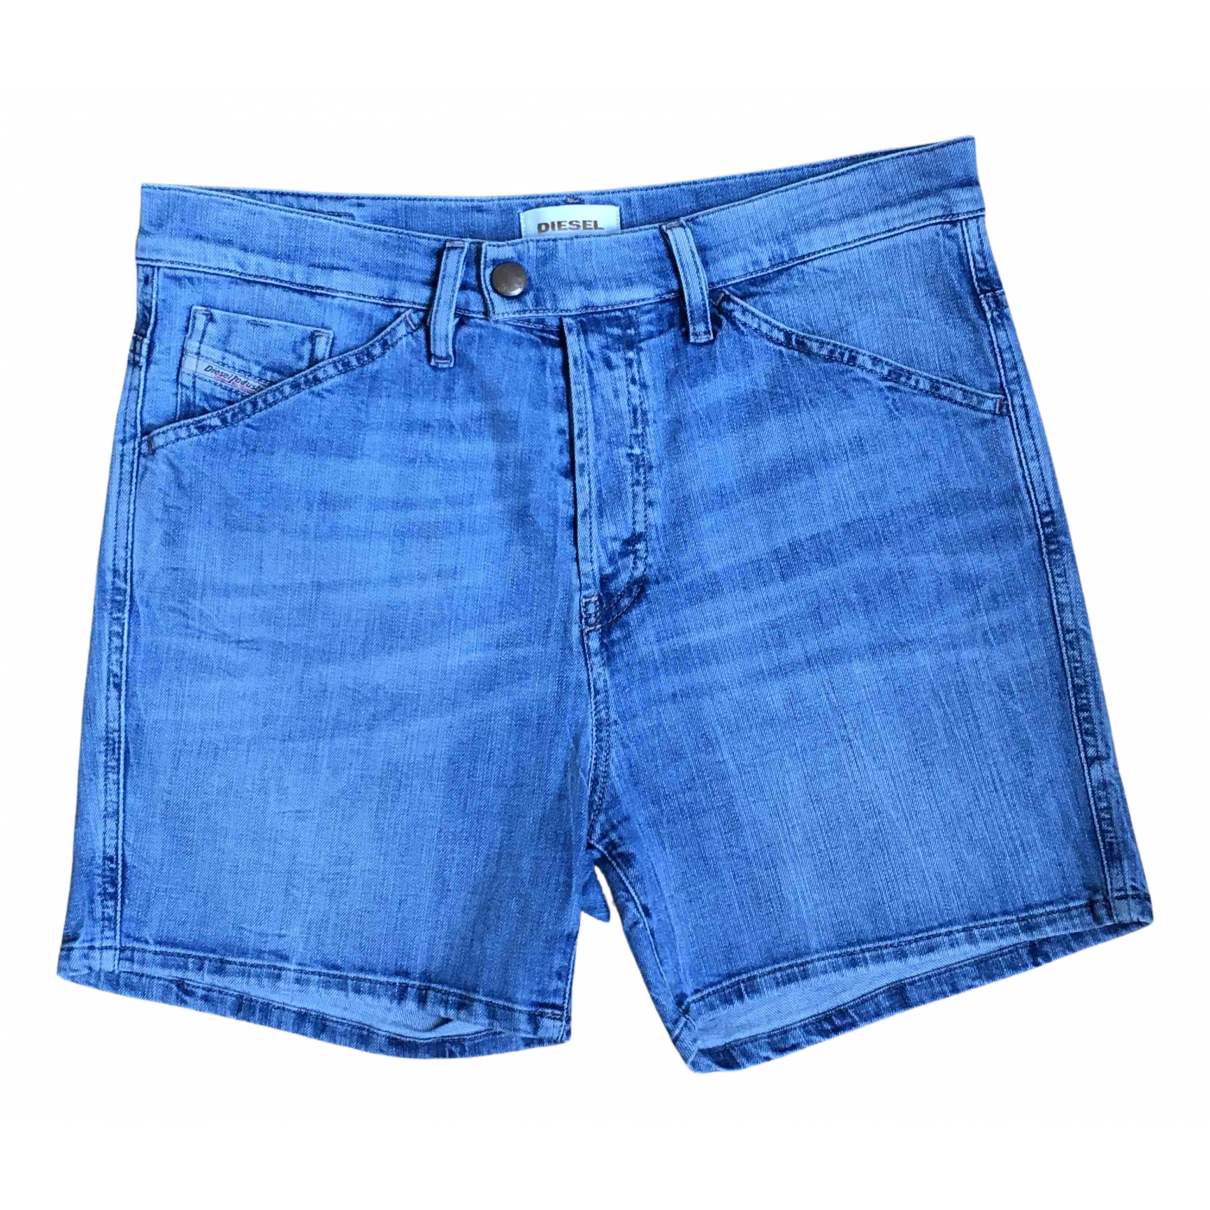 Diesel N Blue Denim - Jeans Shorts for Women 42 IT